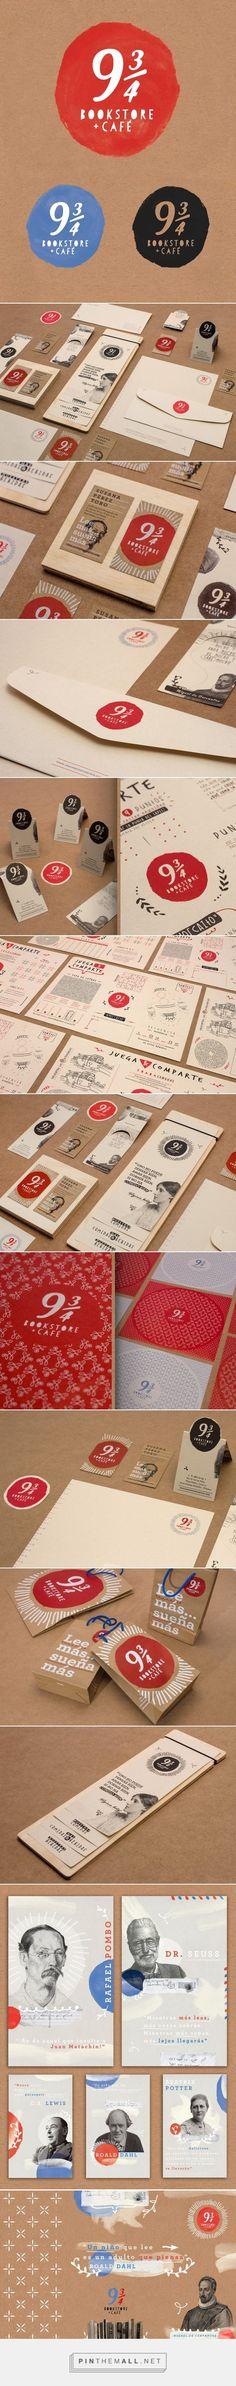 Branding | Graphic Design | 9 3/4 BOOKSTORE and CAF� Branding on Behance.